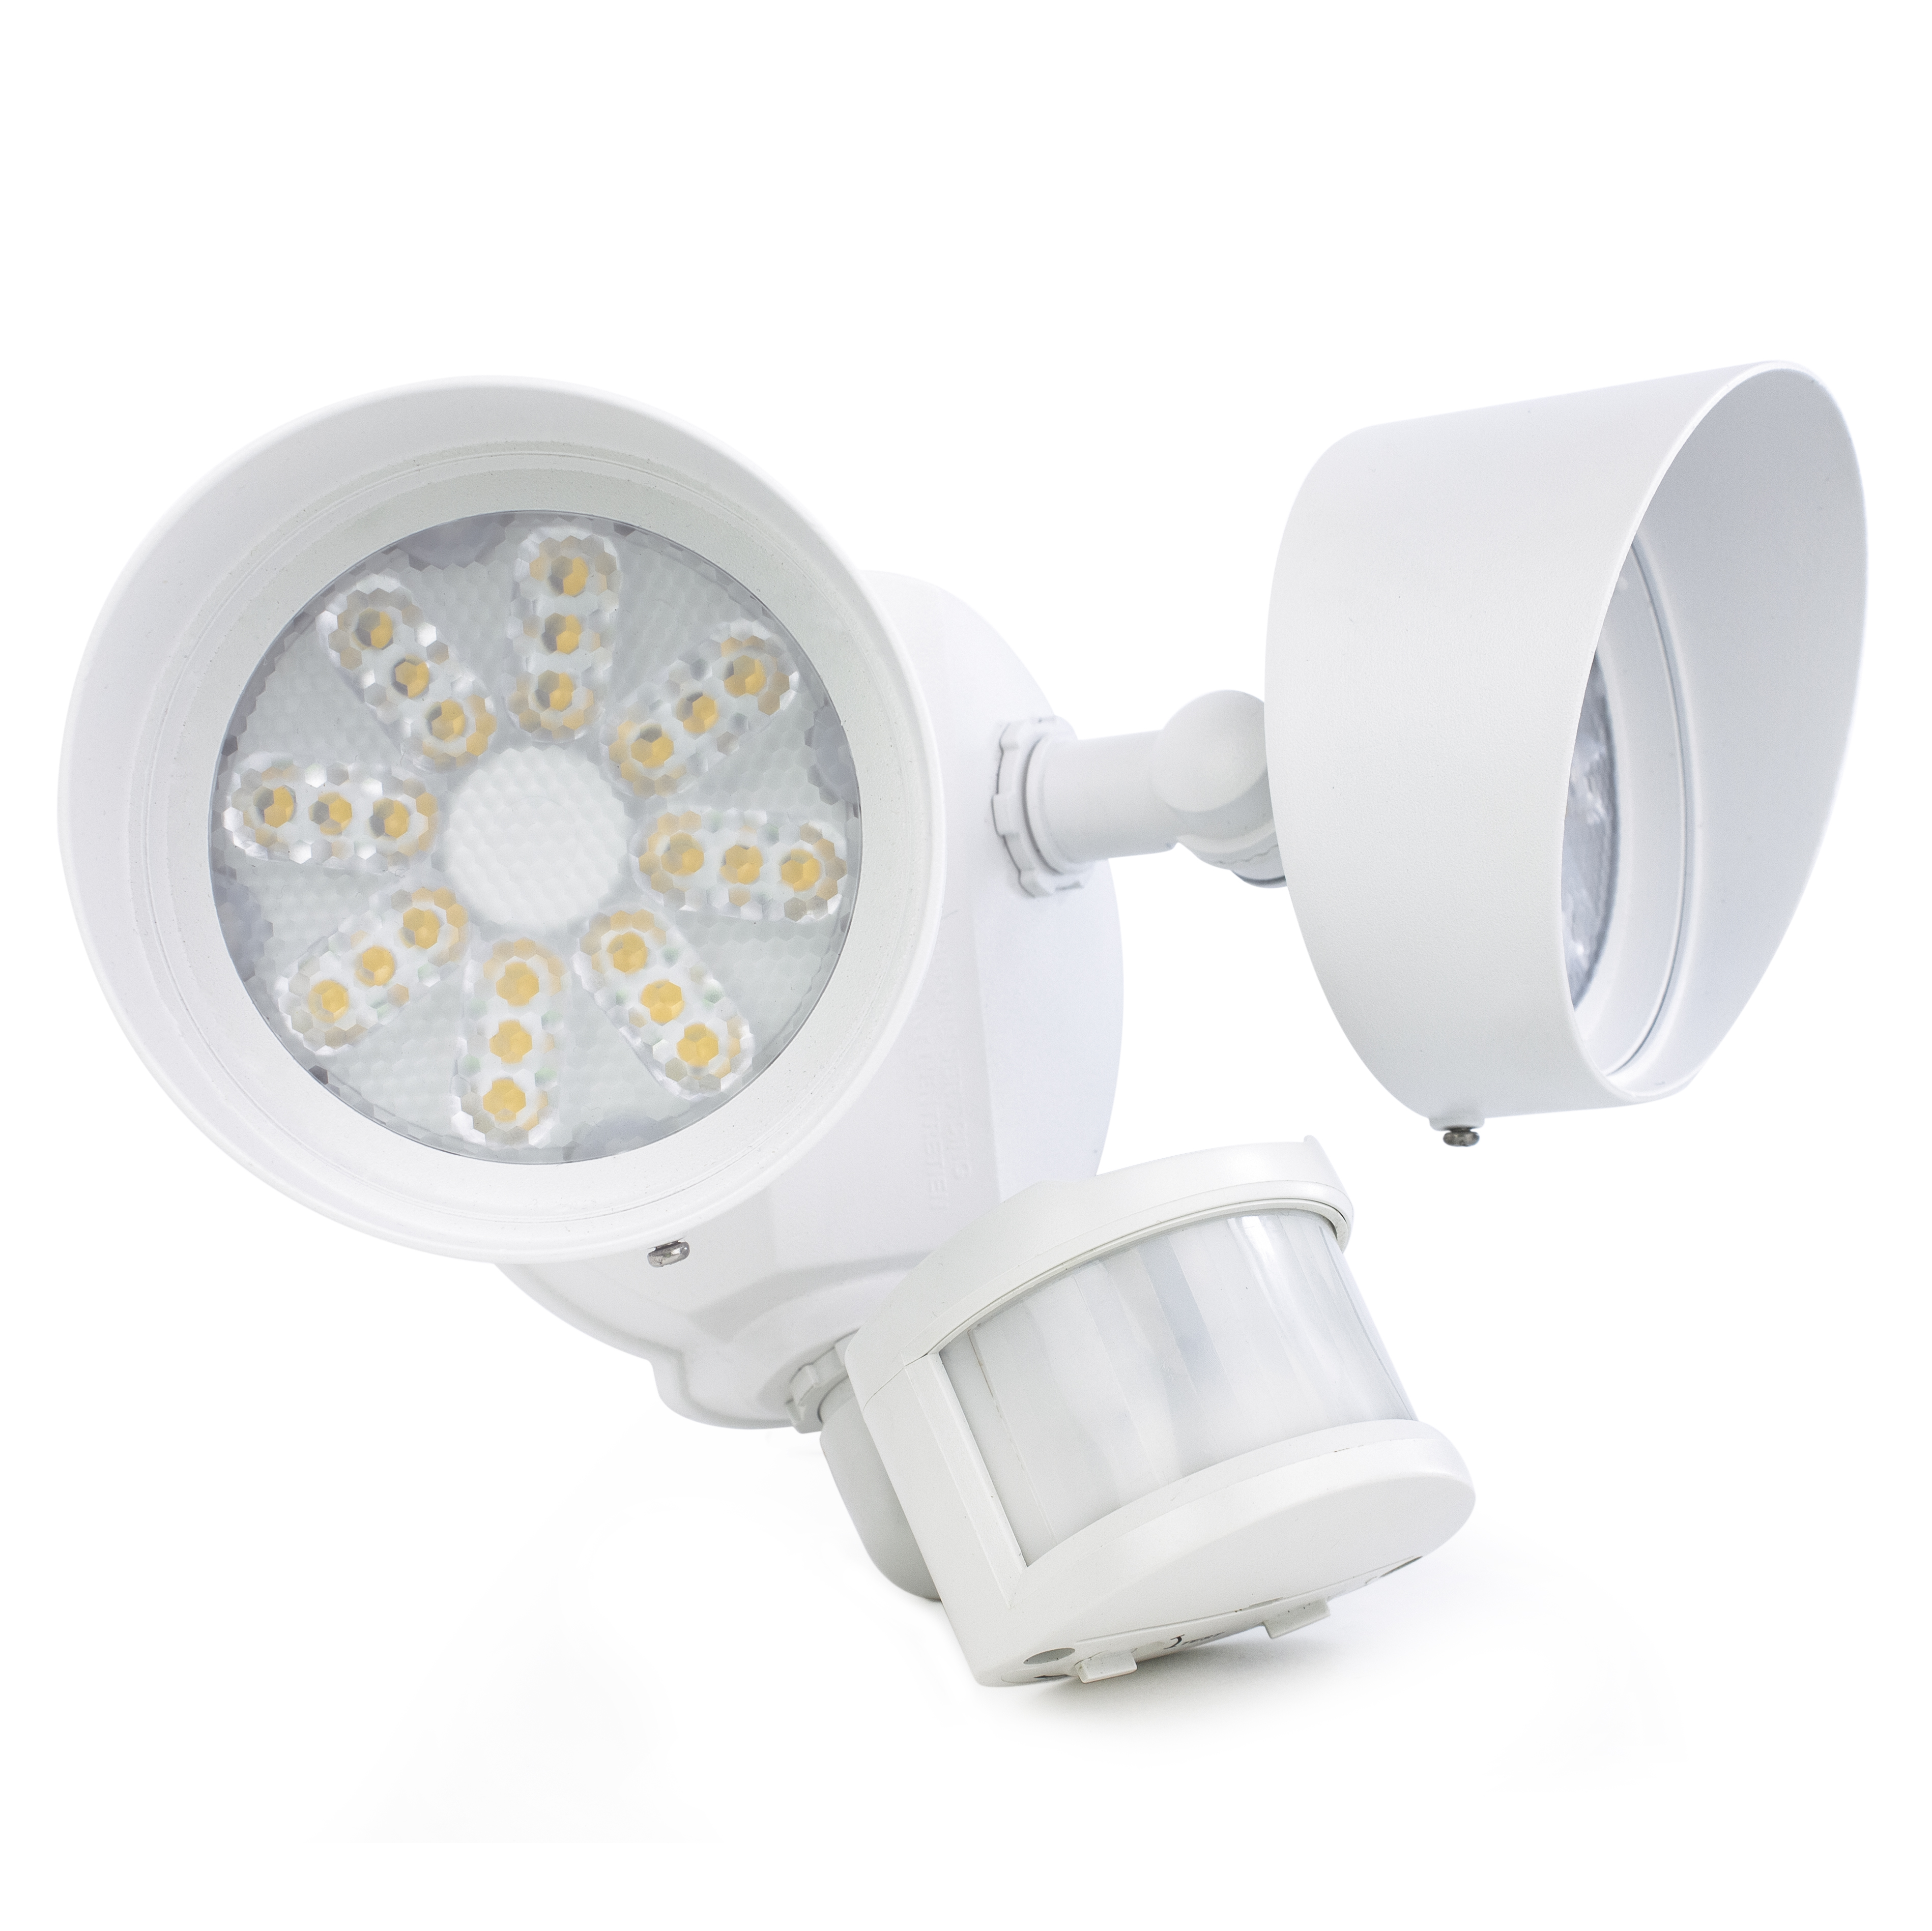 Security light led twin head 3000 lumens 4000k by newhouse lighting newhouse lighting security motion light fixtures use the latest led technology to bring you bright aloadofball Images